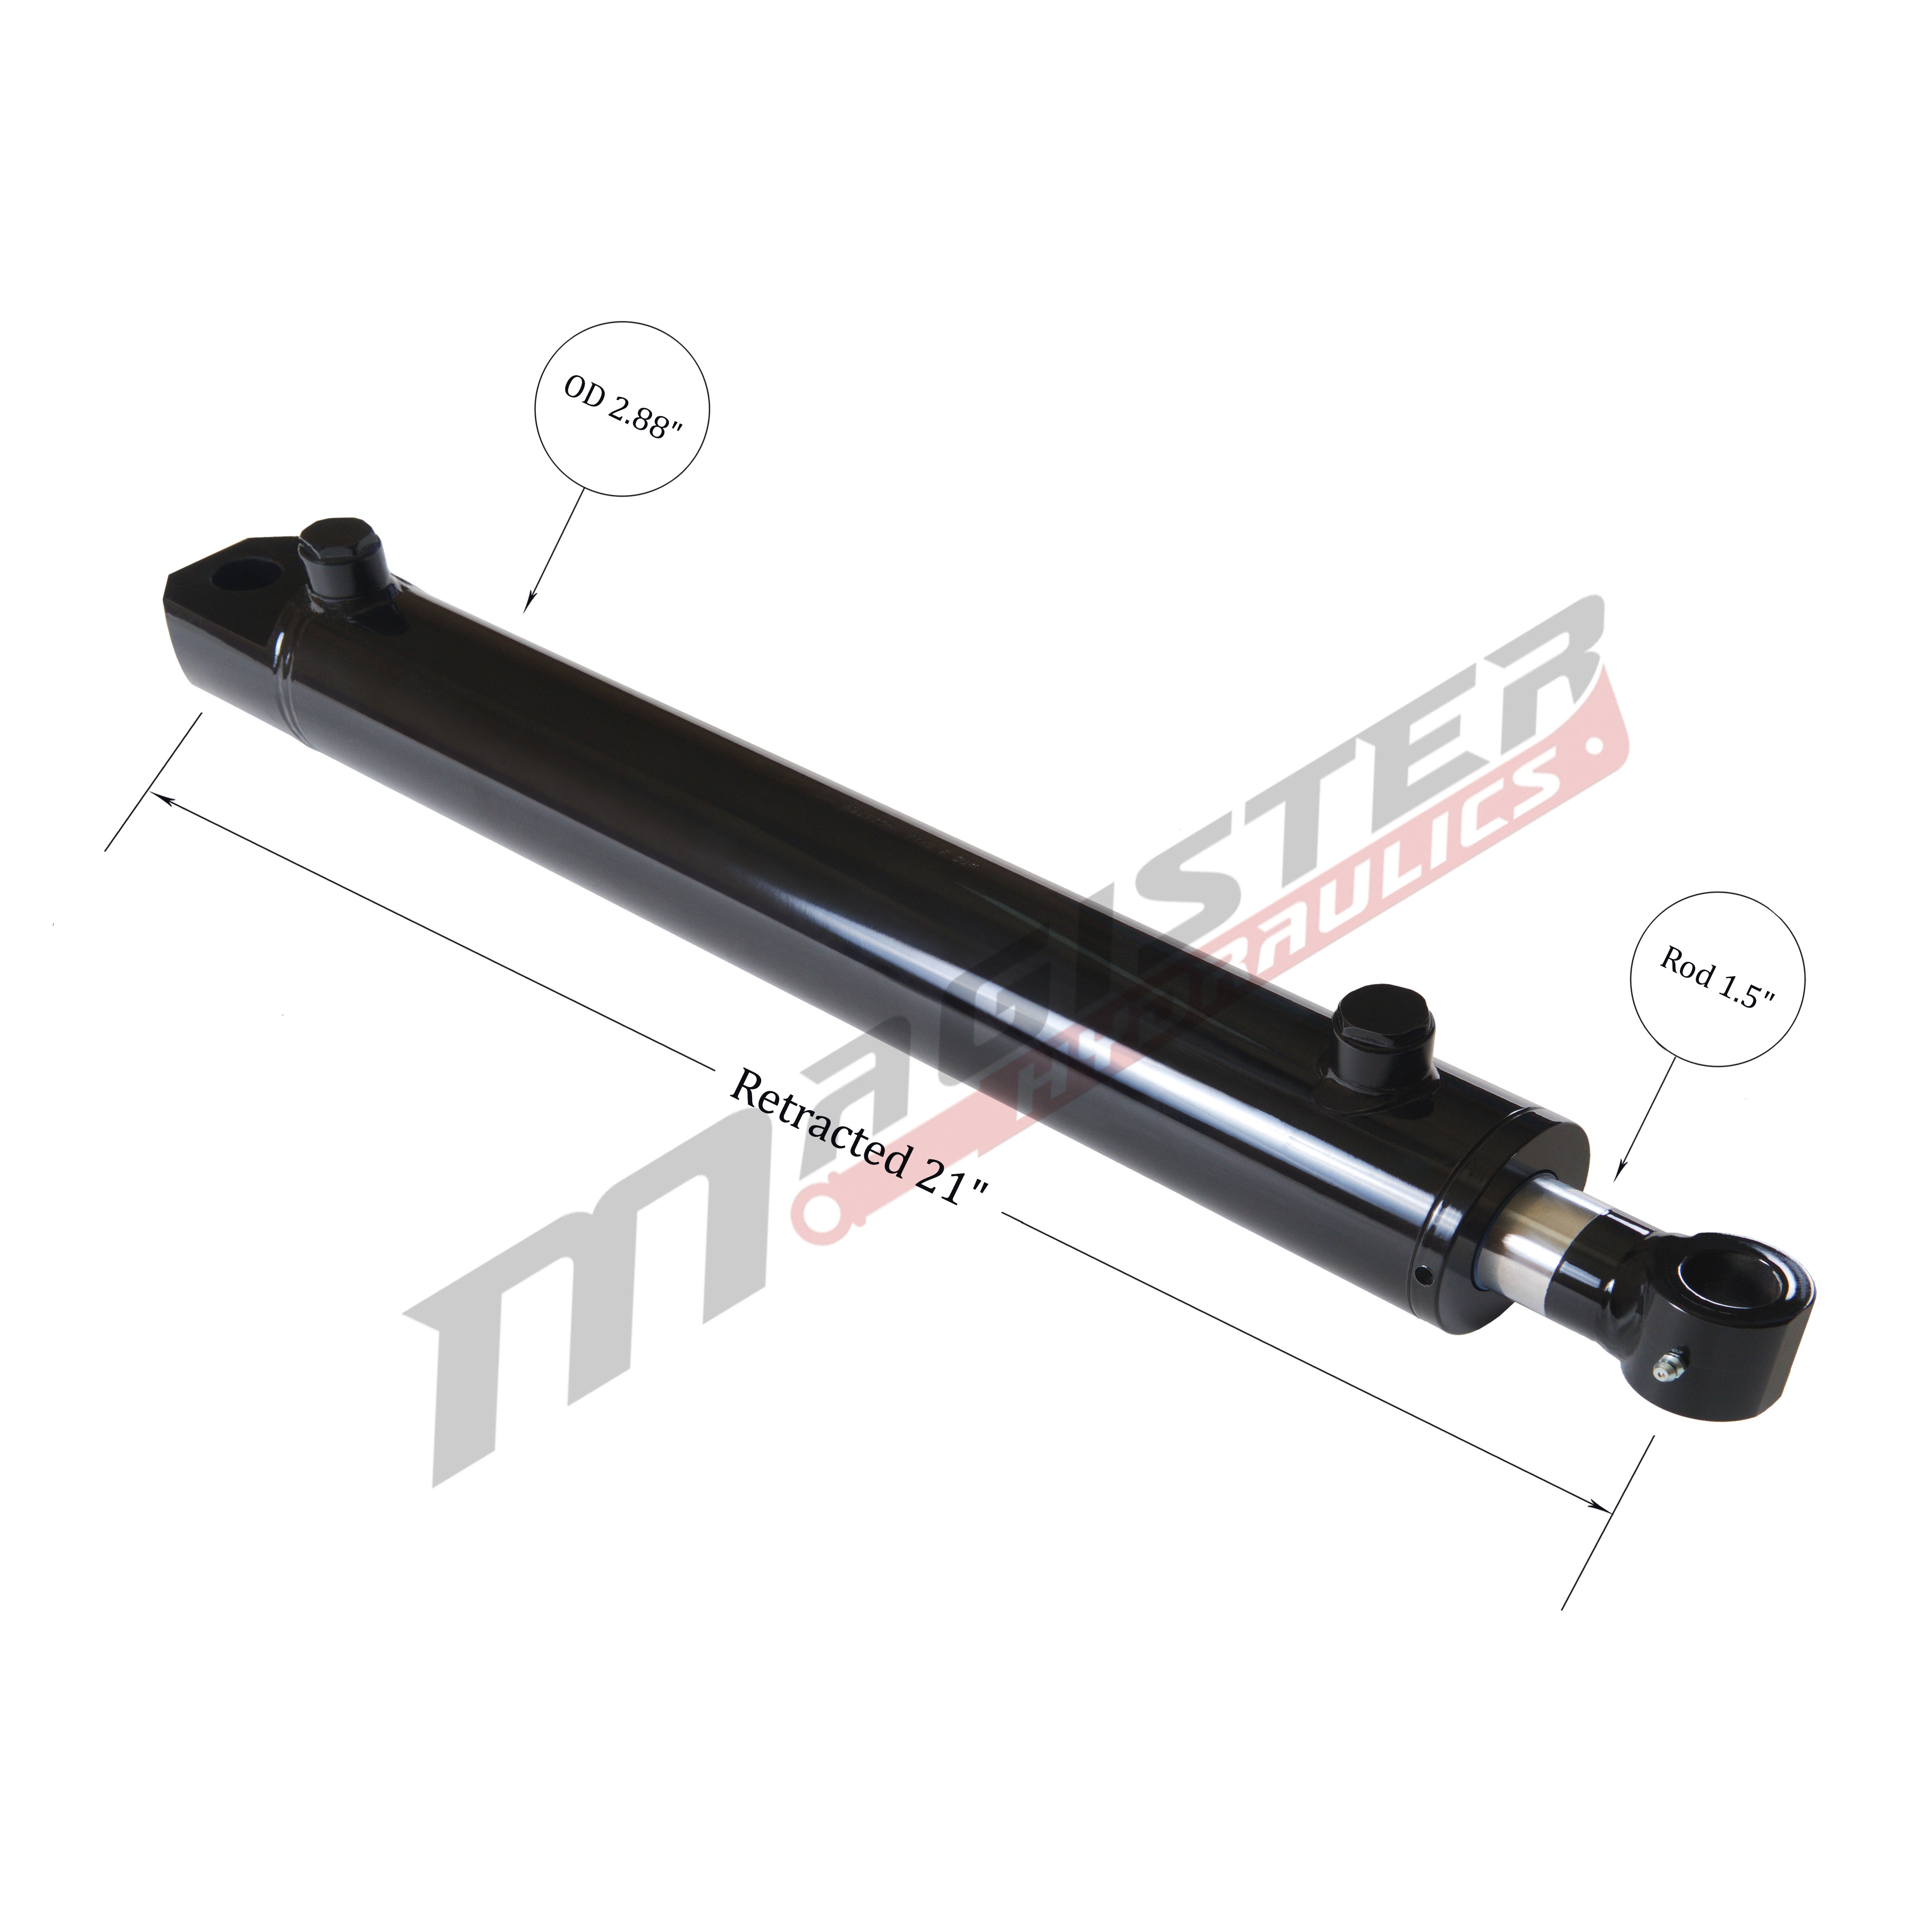 2.5 bore x 12 stroke hydraulic cylinder, welded tang double acting cylinder   Magister Hydraulics